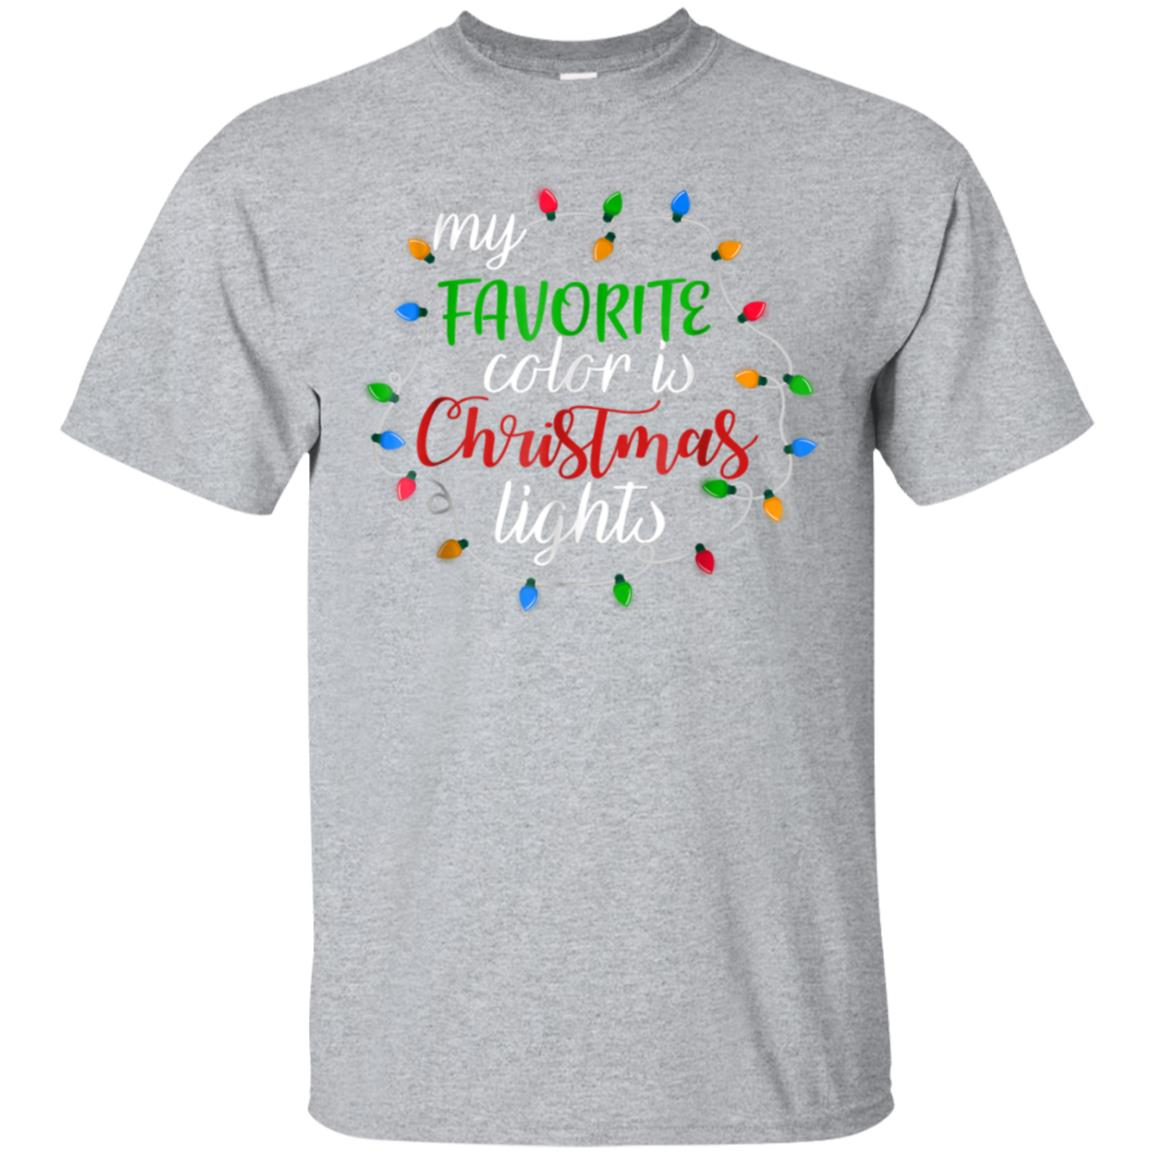 My Favorite Color Is Christmas Lights Awesome Gift T shirt 99promocode